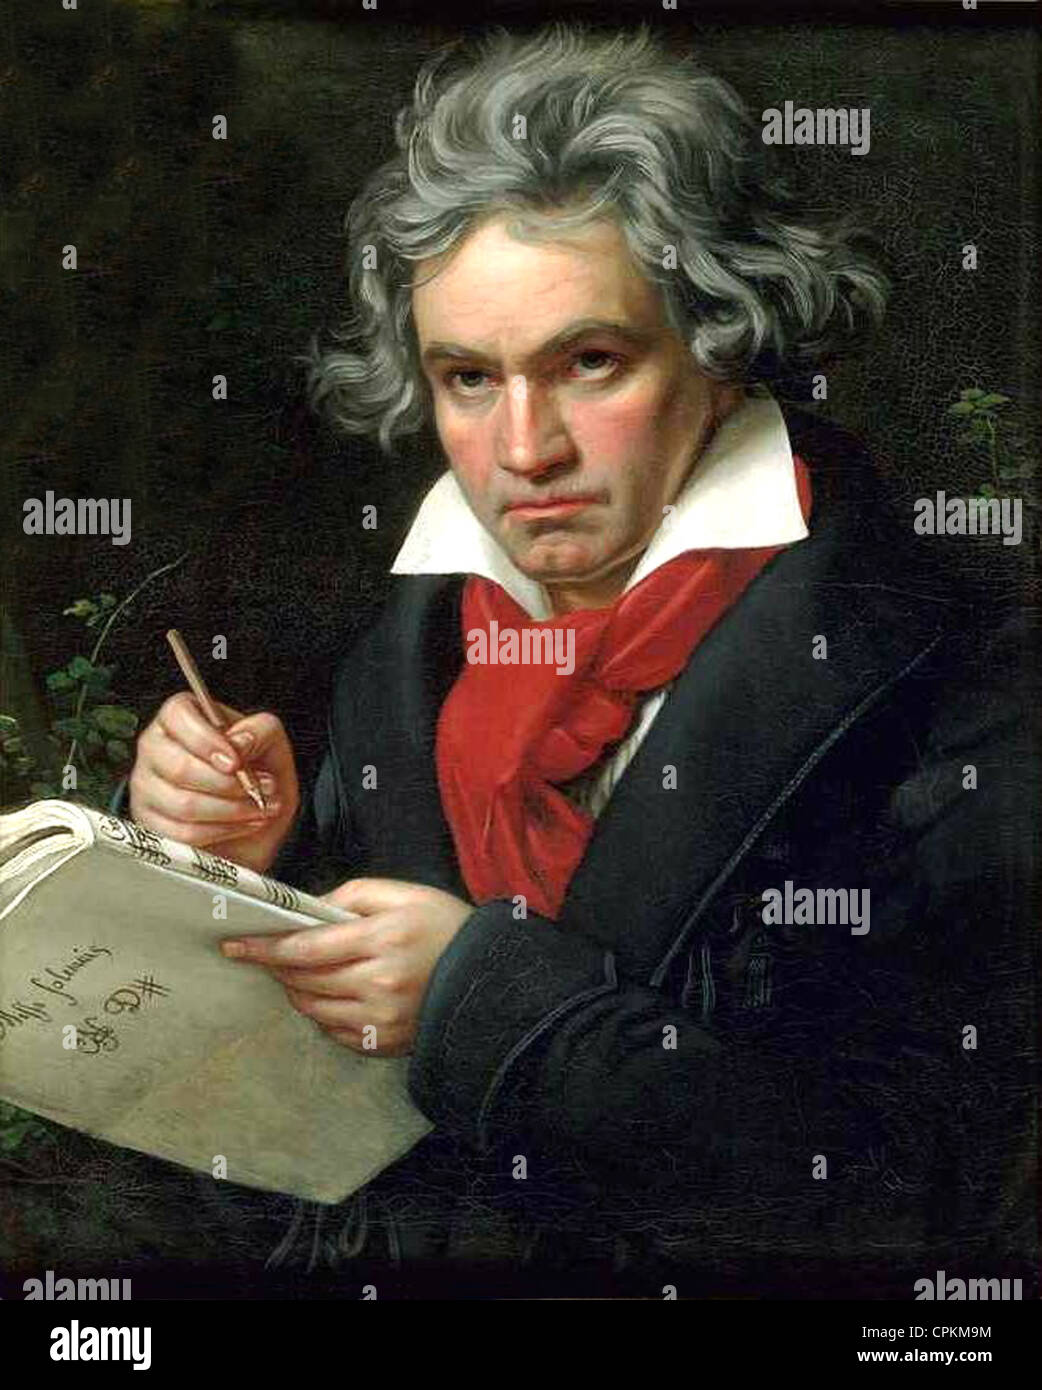 Painting of Ludwig van Beethoven in 1820 by Joseph Karl Stieler. Image in public domain due to paintings age. - Stock Image